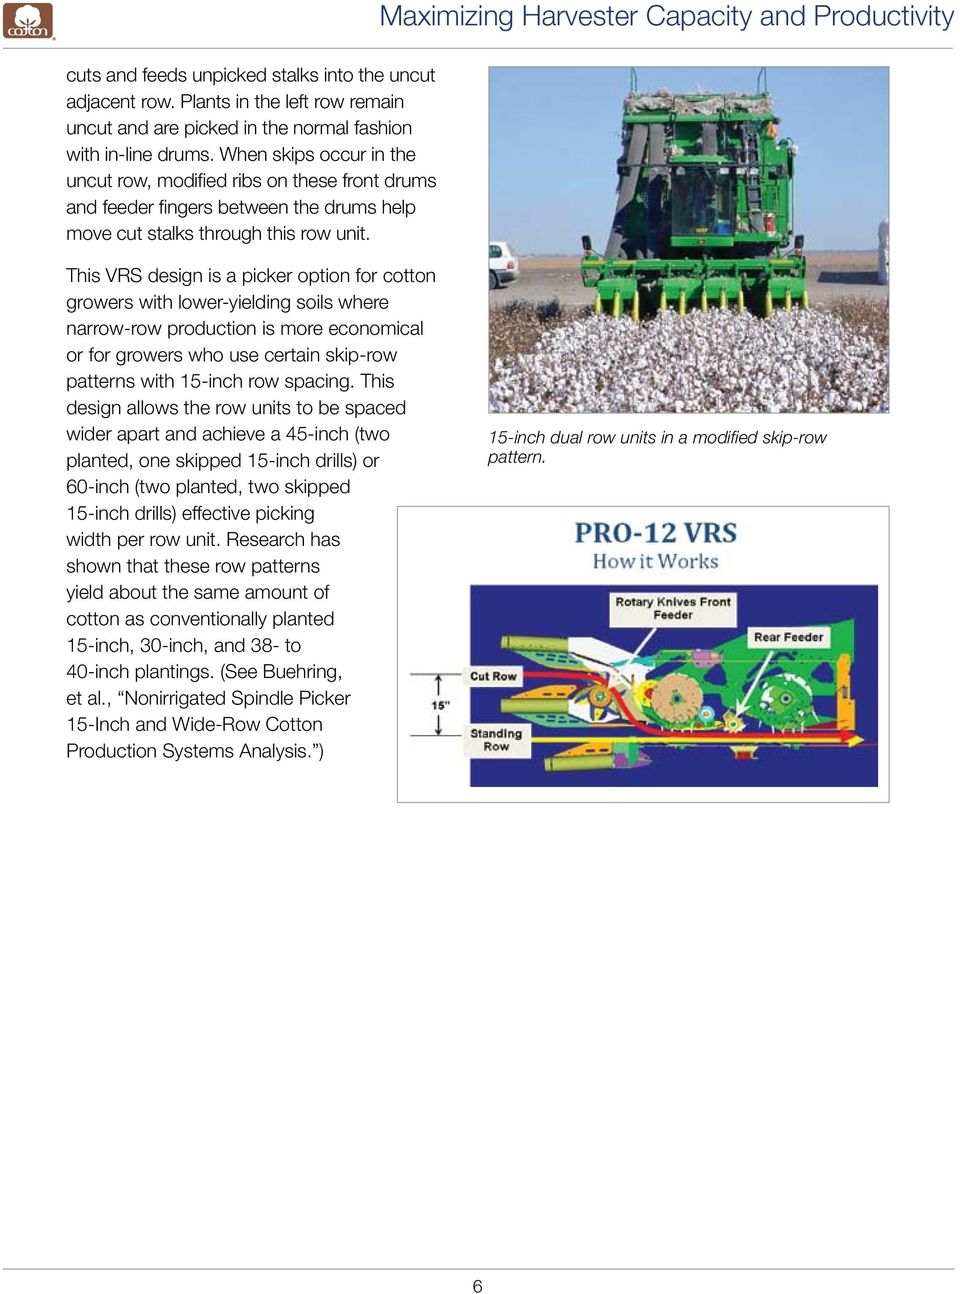 This VRS design is a picker option for cotton growers with lower-yielding soils where narrow-row production is more economical or for growers who use certain skip-row patterns with 15-inch row